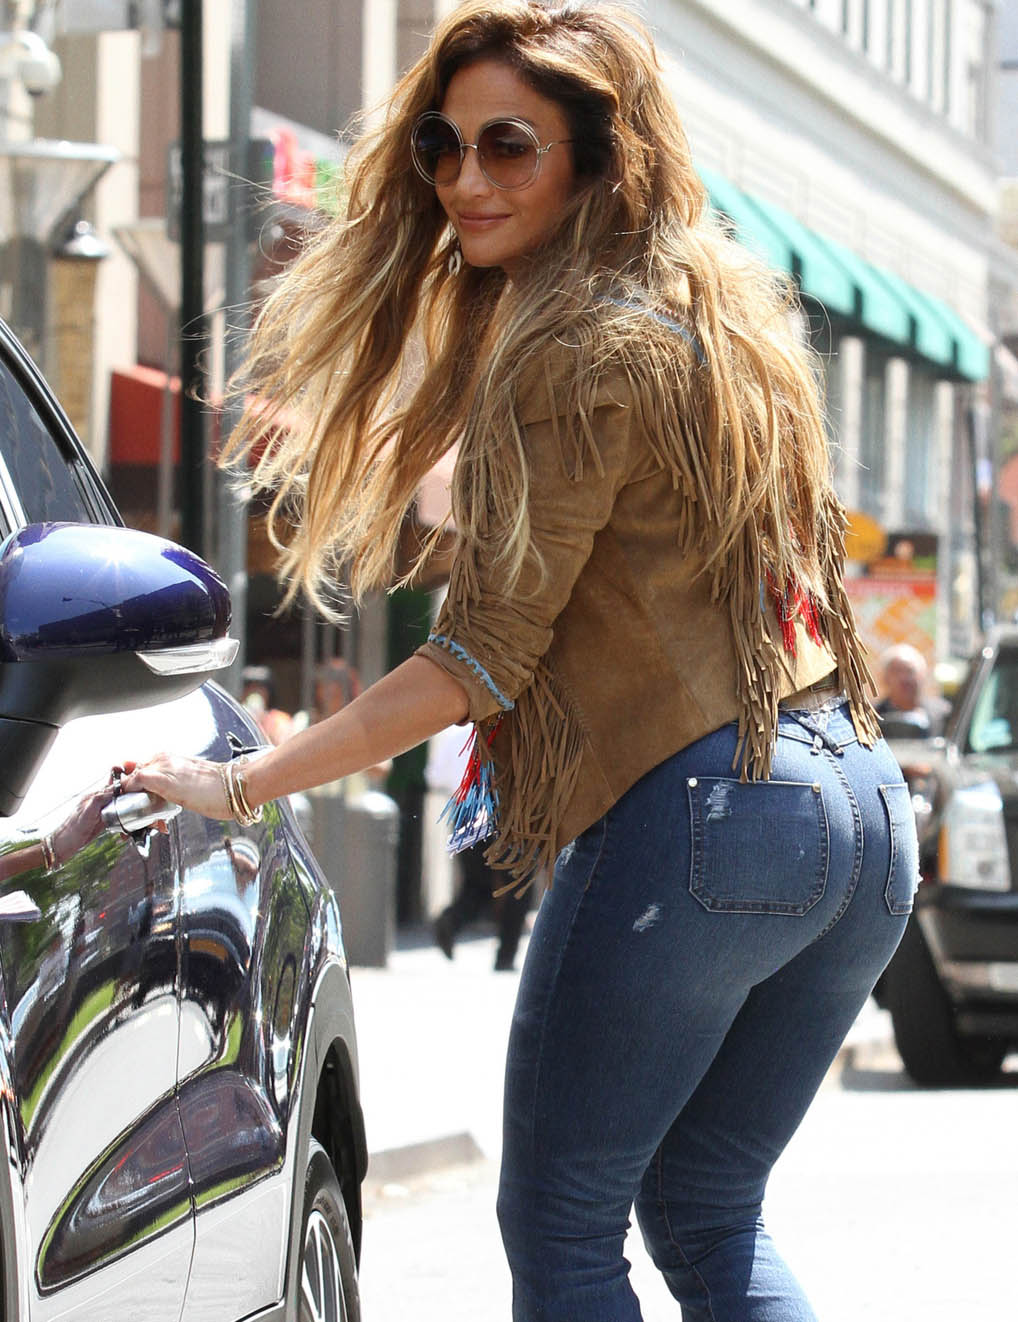 Jennifer lopez butt confirm. was